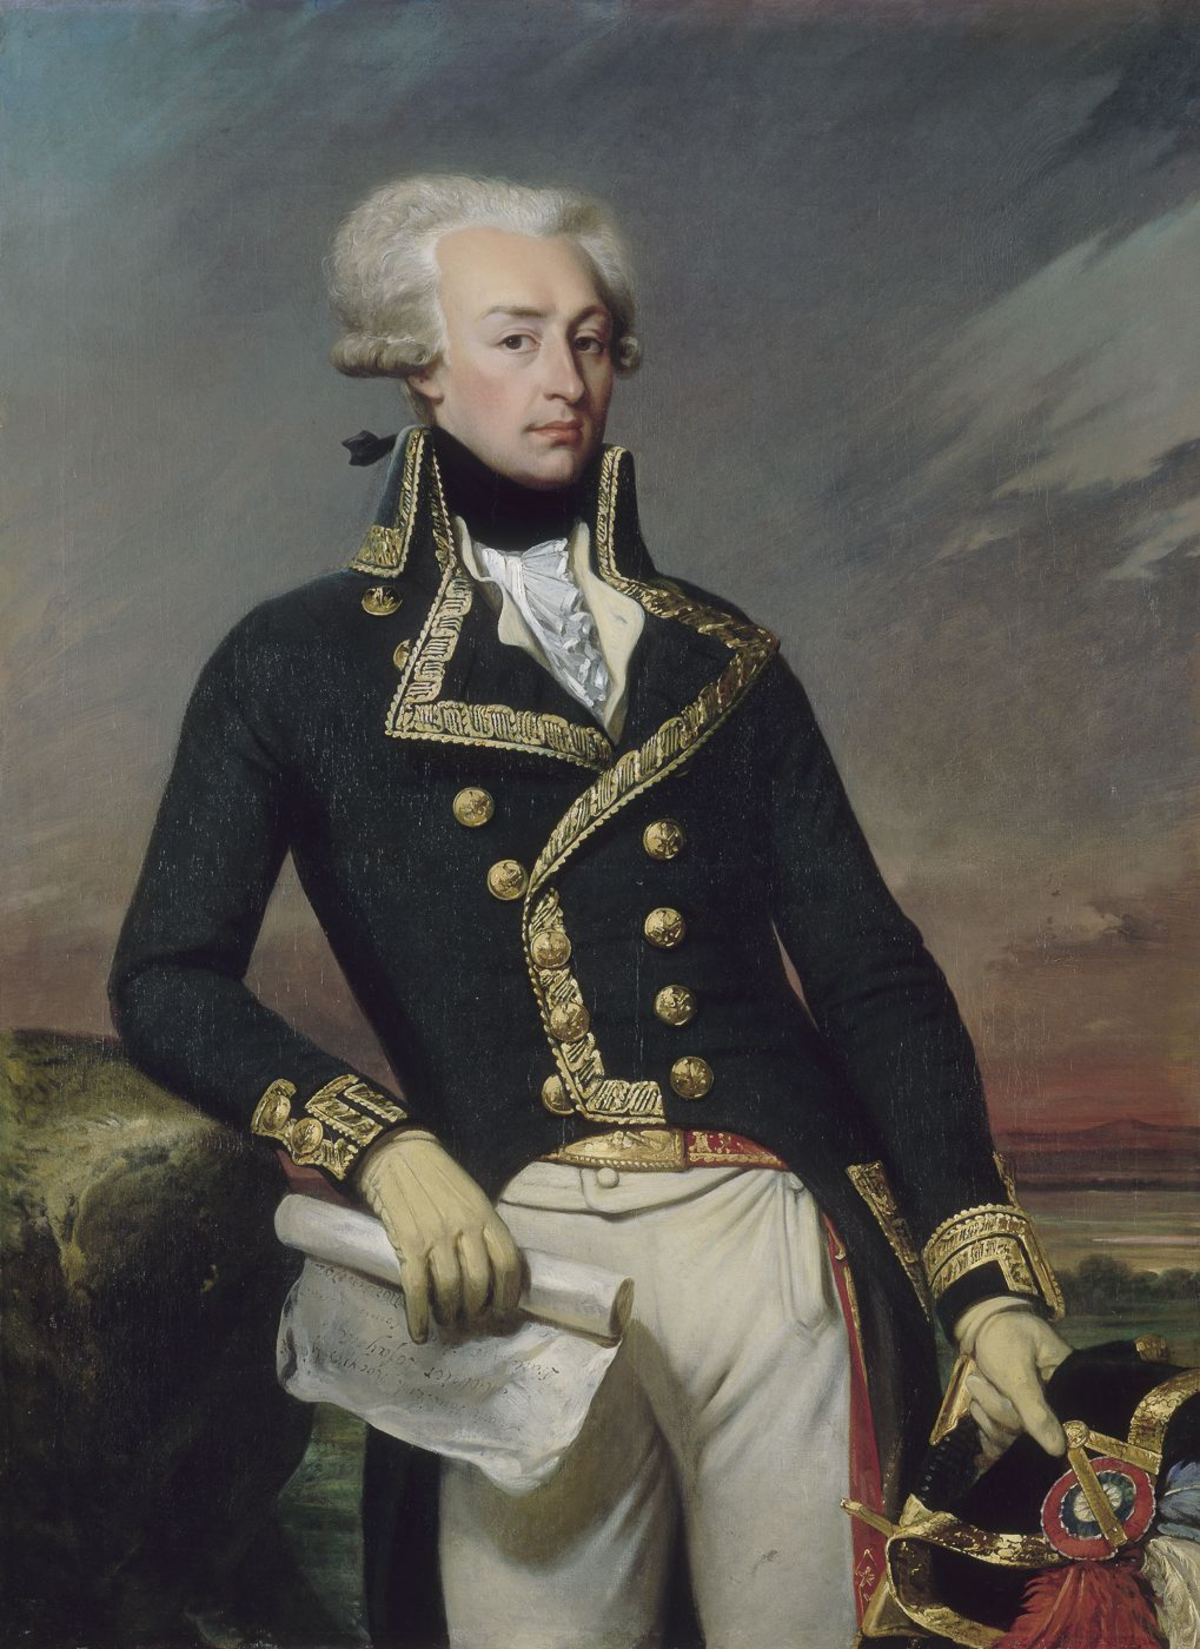 Gilbert Du Motier Marquis De Lafayette Wikipedia - If celebrities were 19th century military generals they would look like this